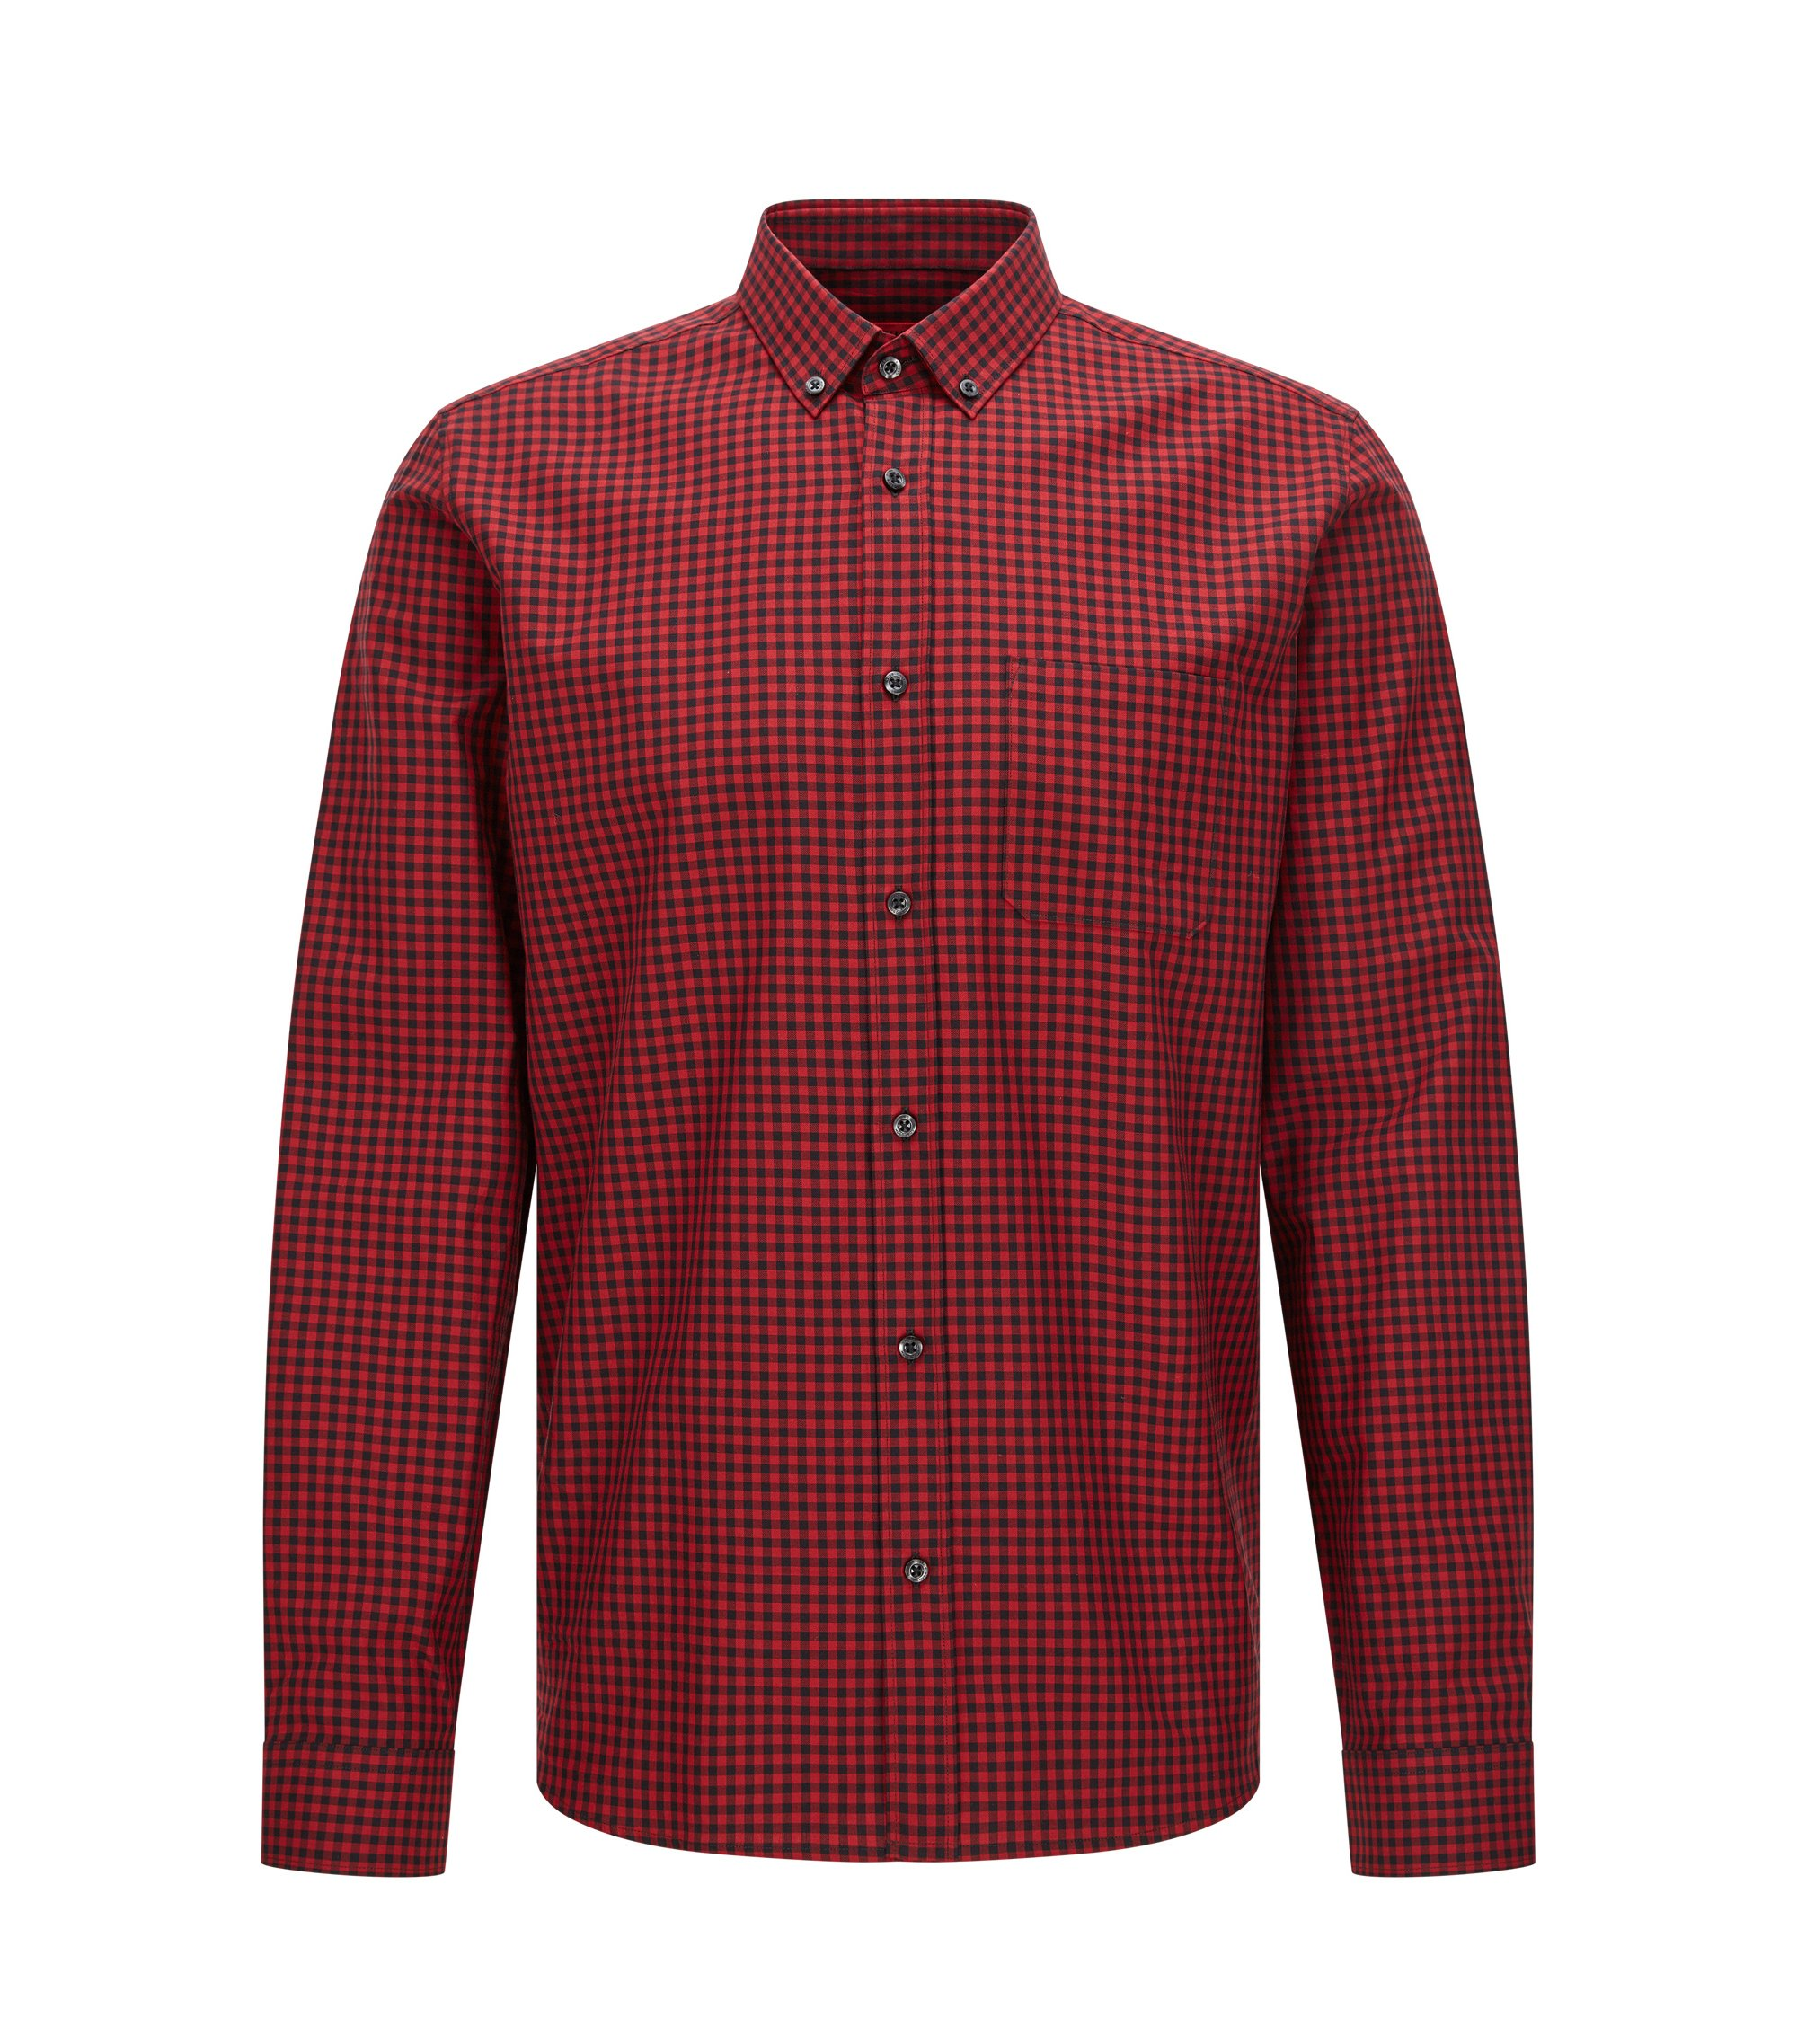 Gingham Cotton Button Down Shirt, Relaxed Fit | Emingway, Dark Red